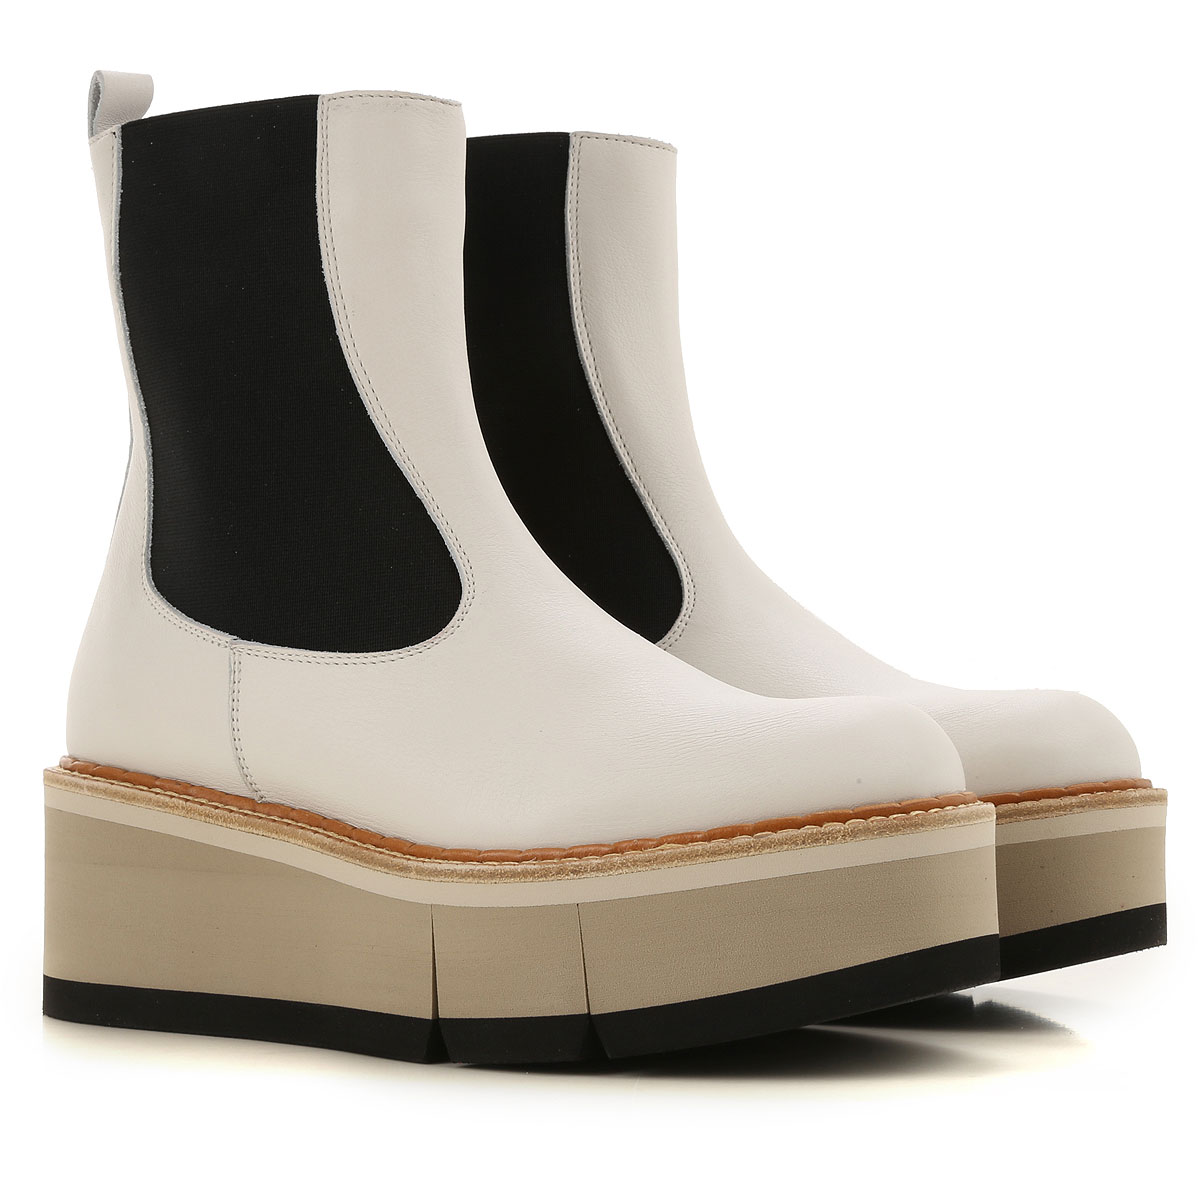 Paloma Barcelo Boots for Women, Booties On Sale, White, Leather, 2019, 10 5 7 8